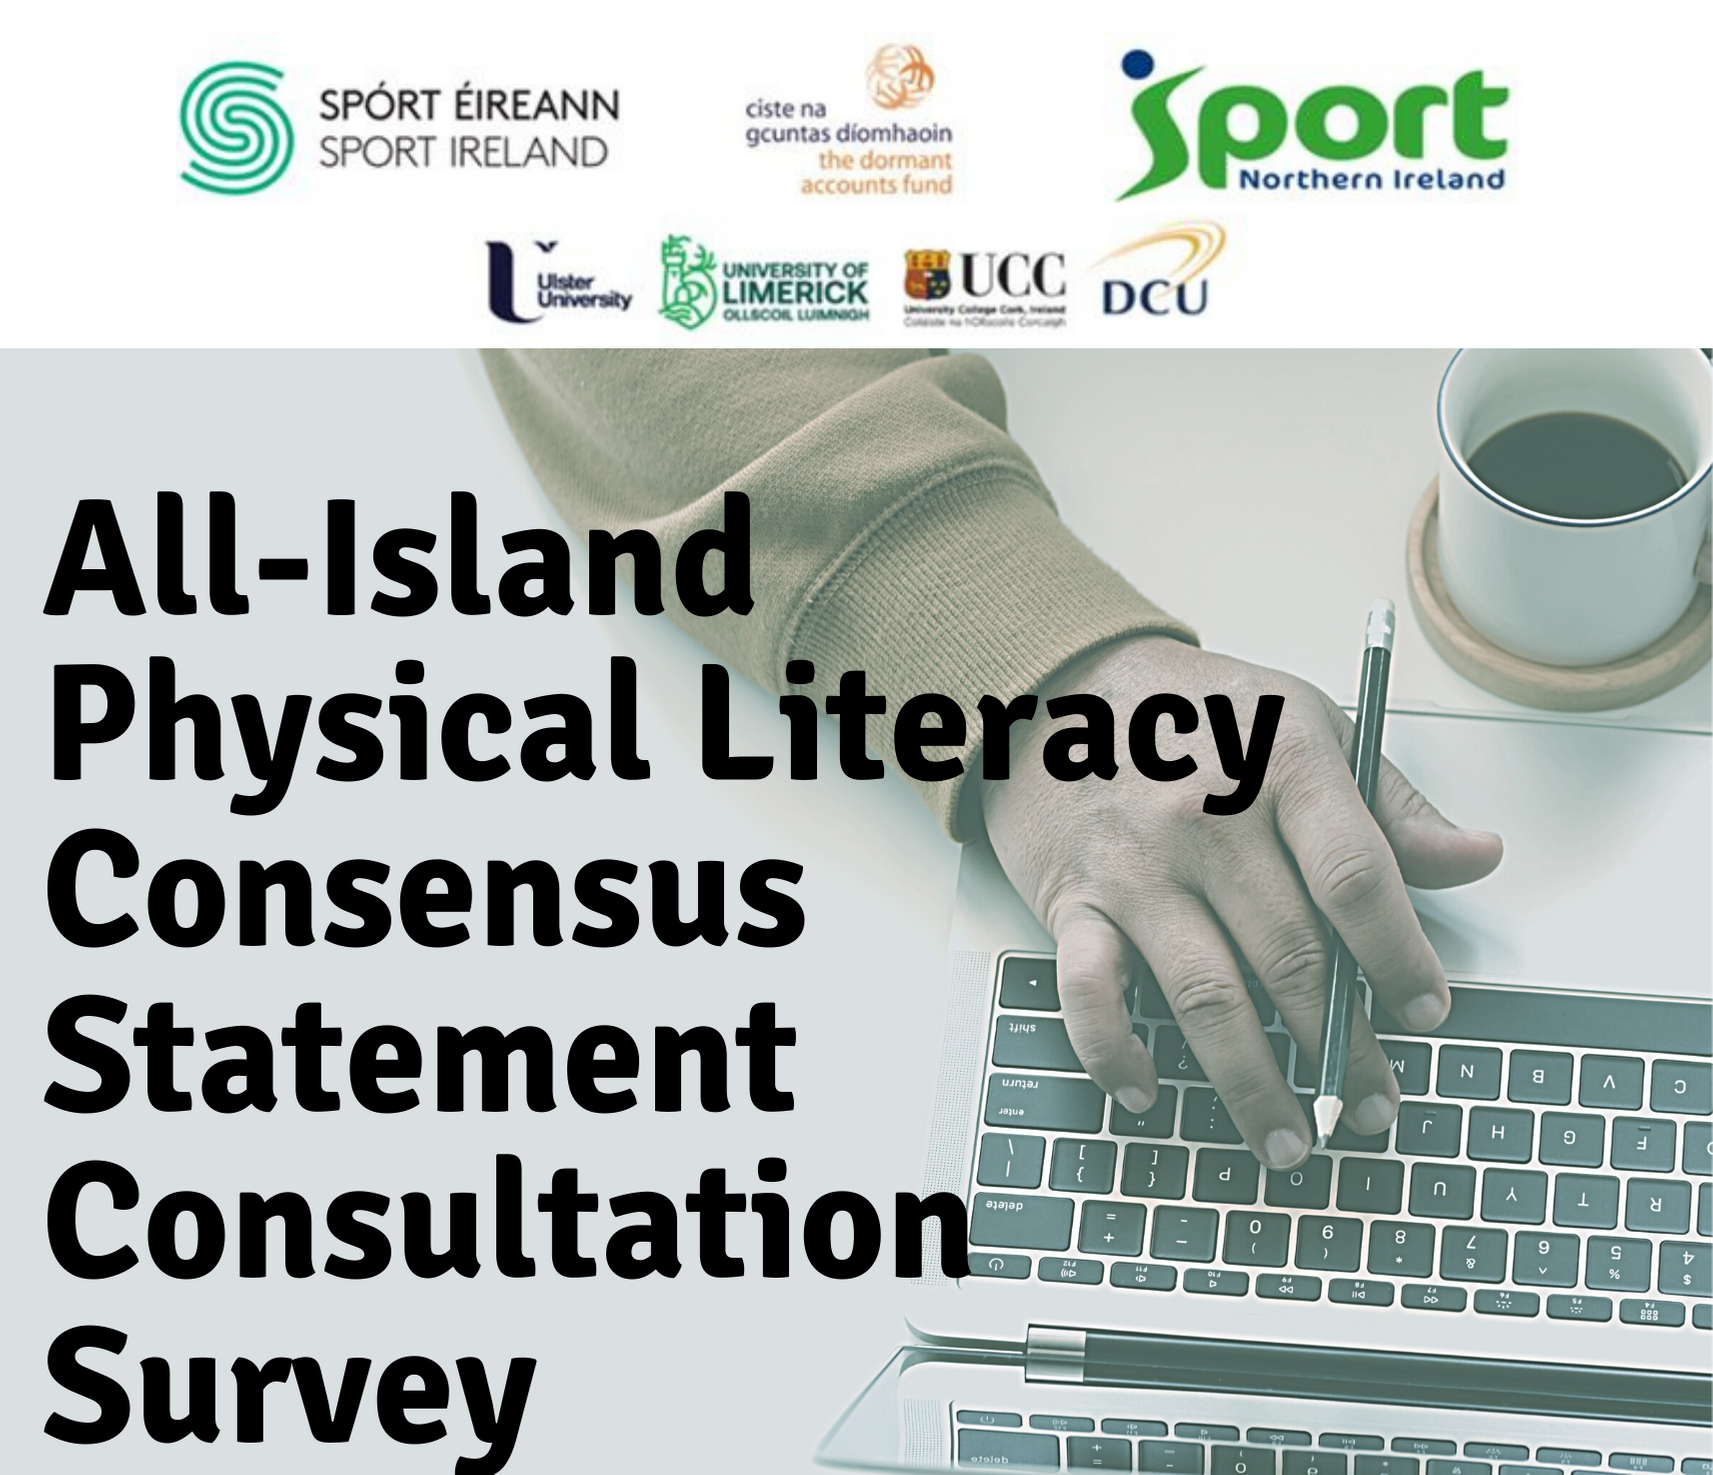 All Island Physical Literacy Consensus Statement Consultation Survey